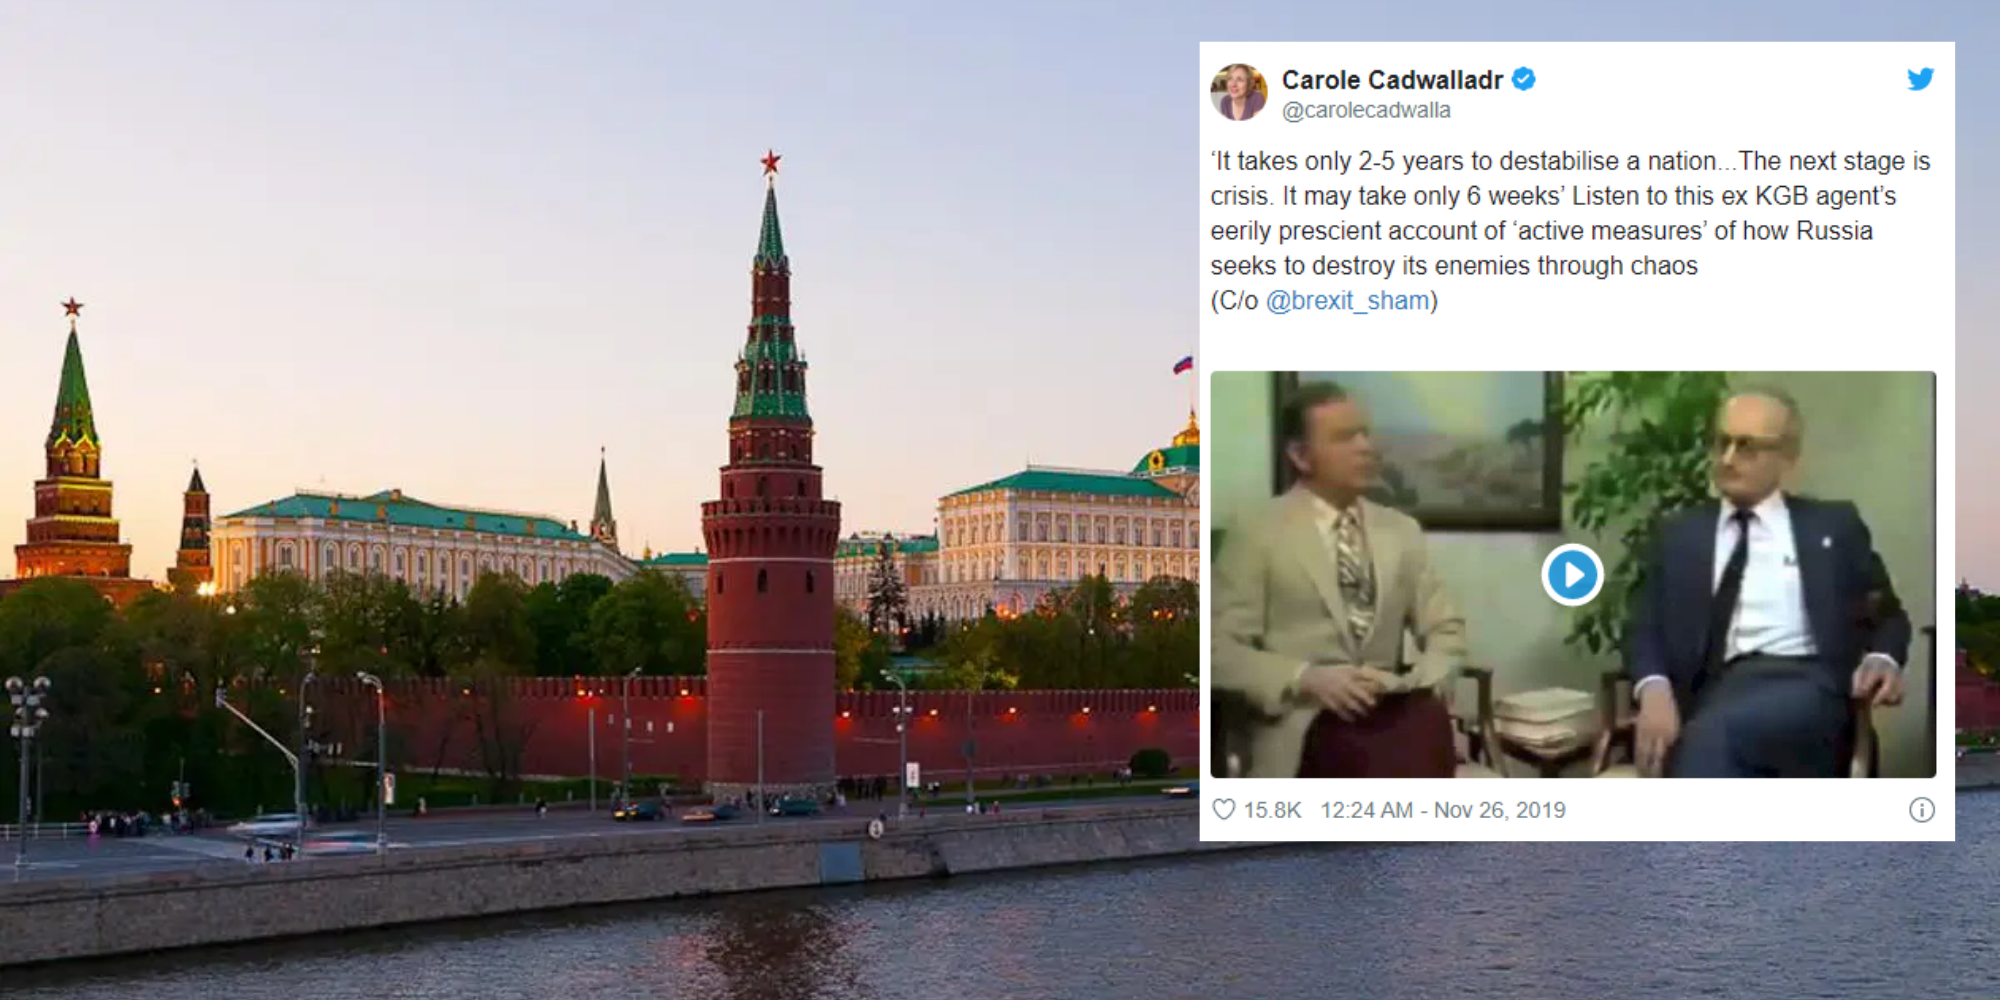 This ex-KGB agent's account of how to destabilise a nation is eerily…